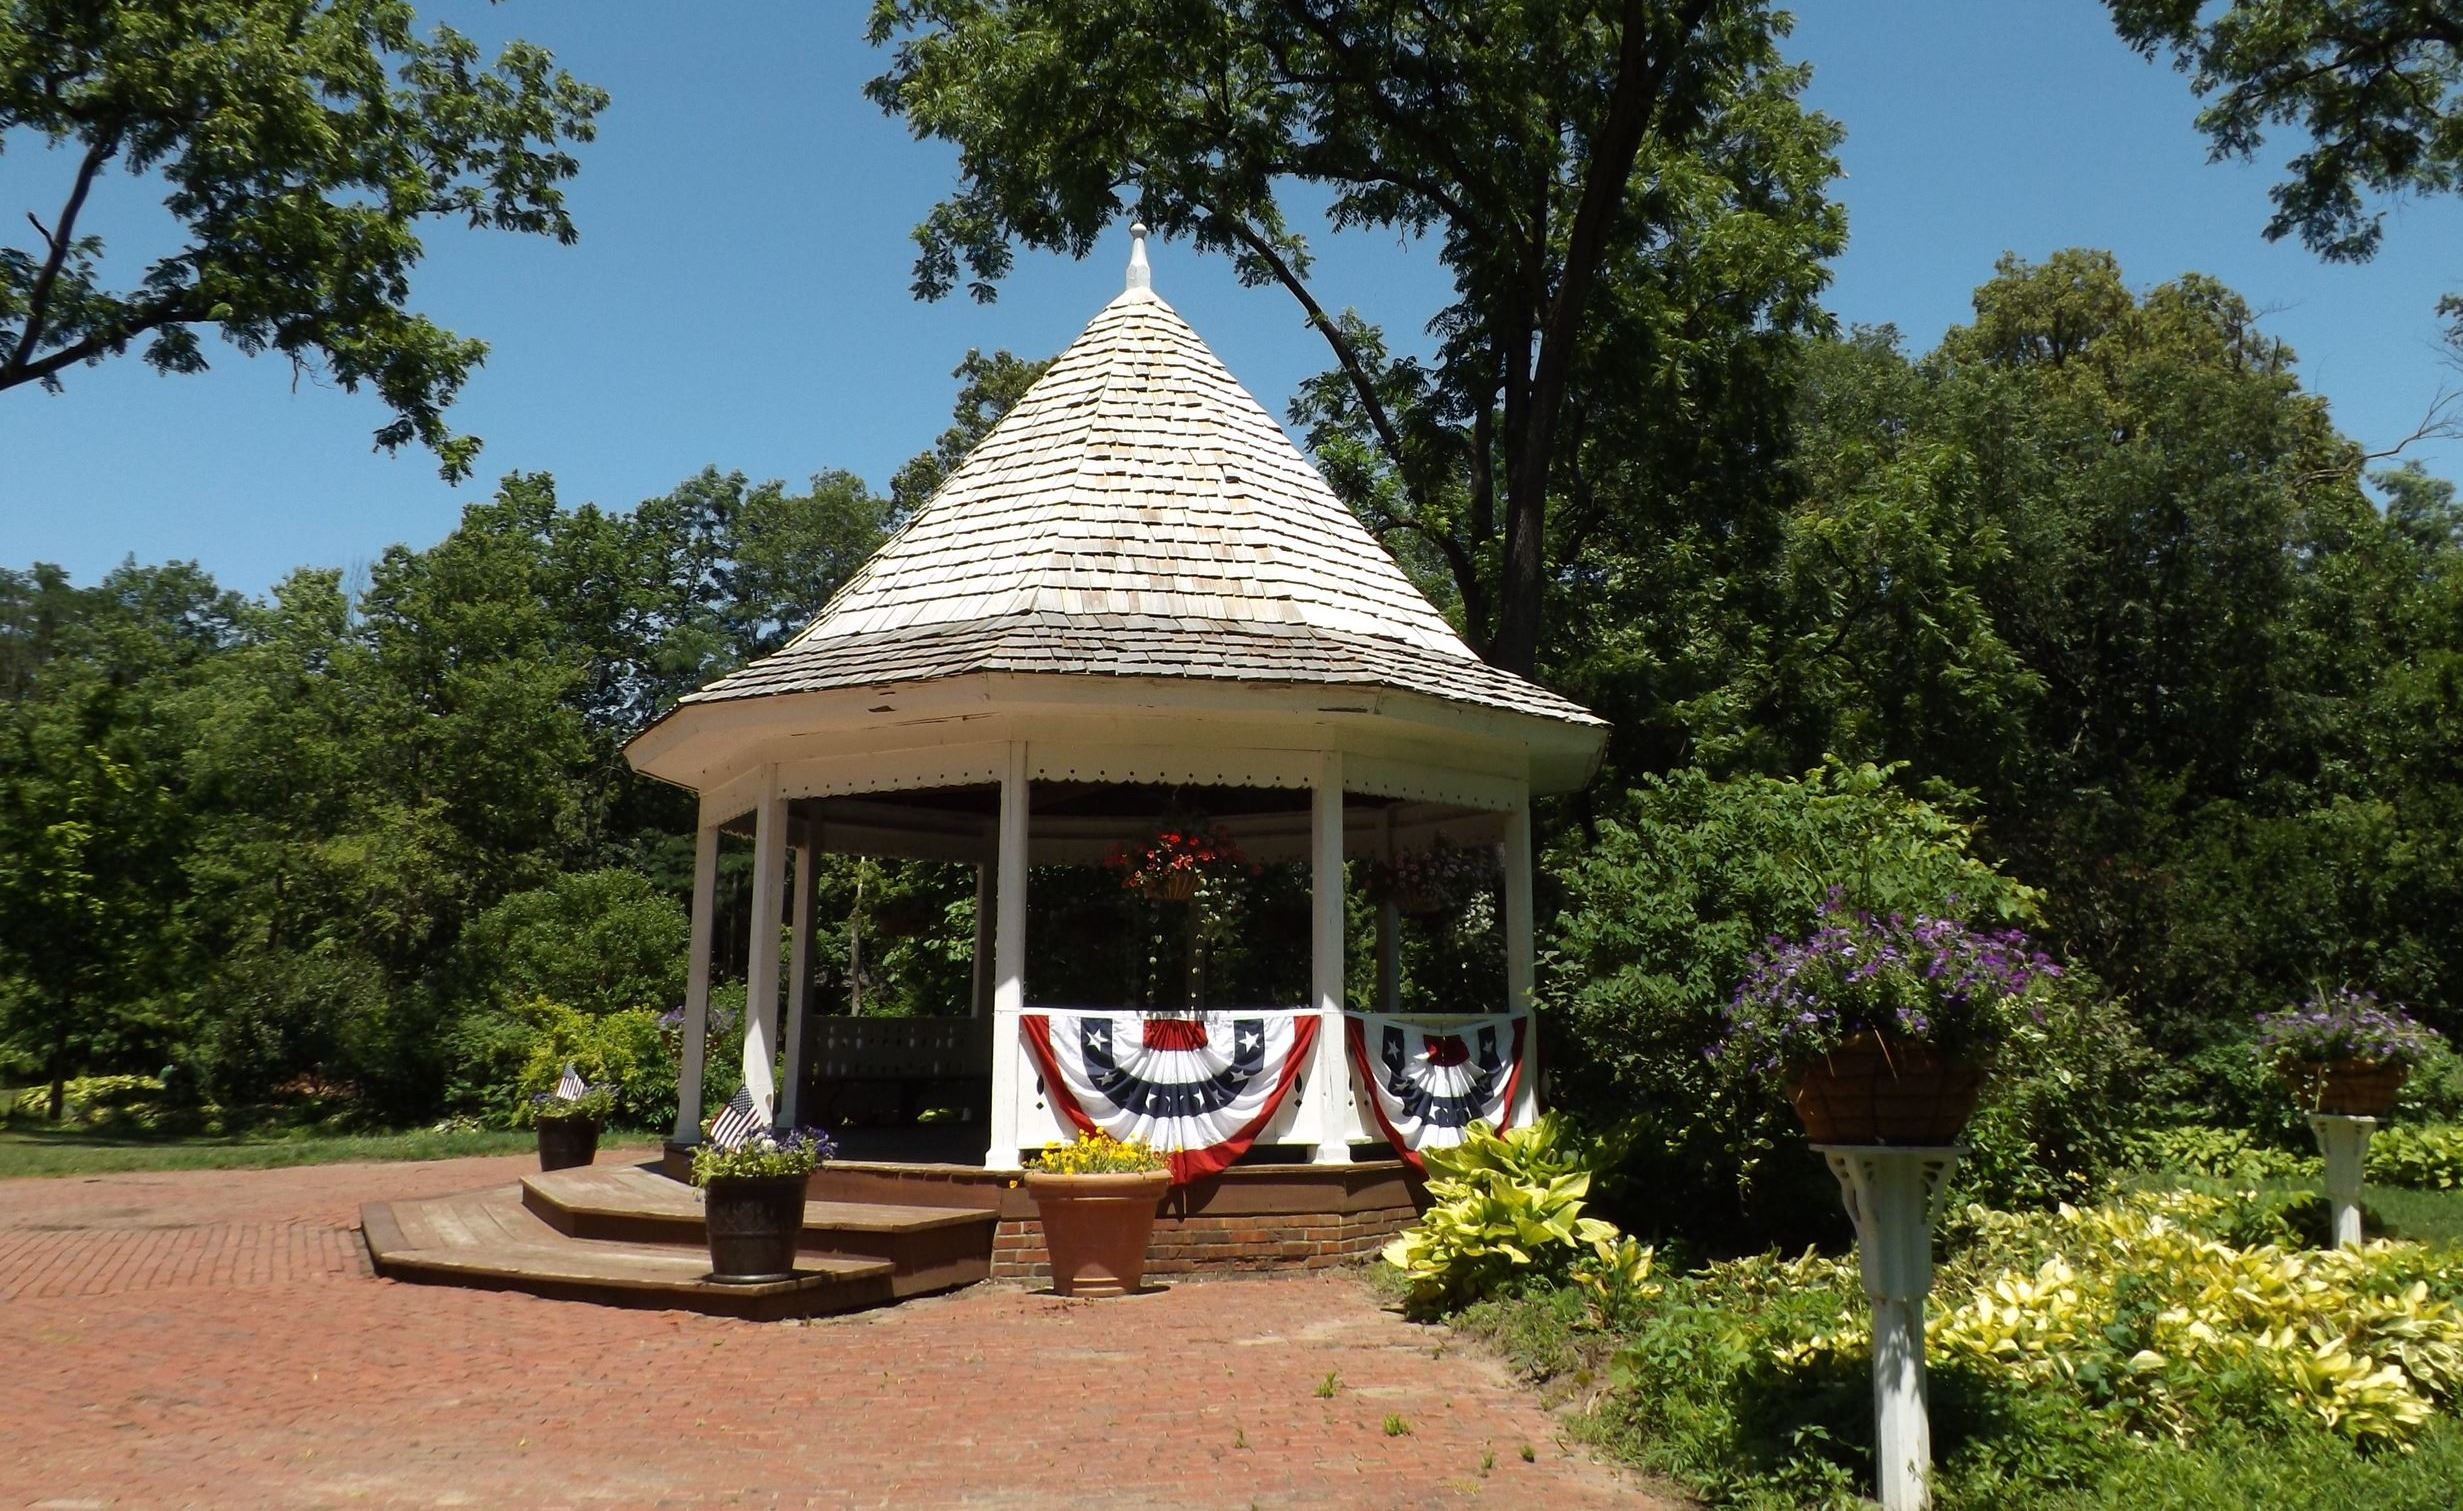 Deep River gazebo decorated